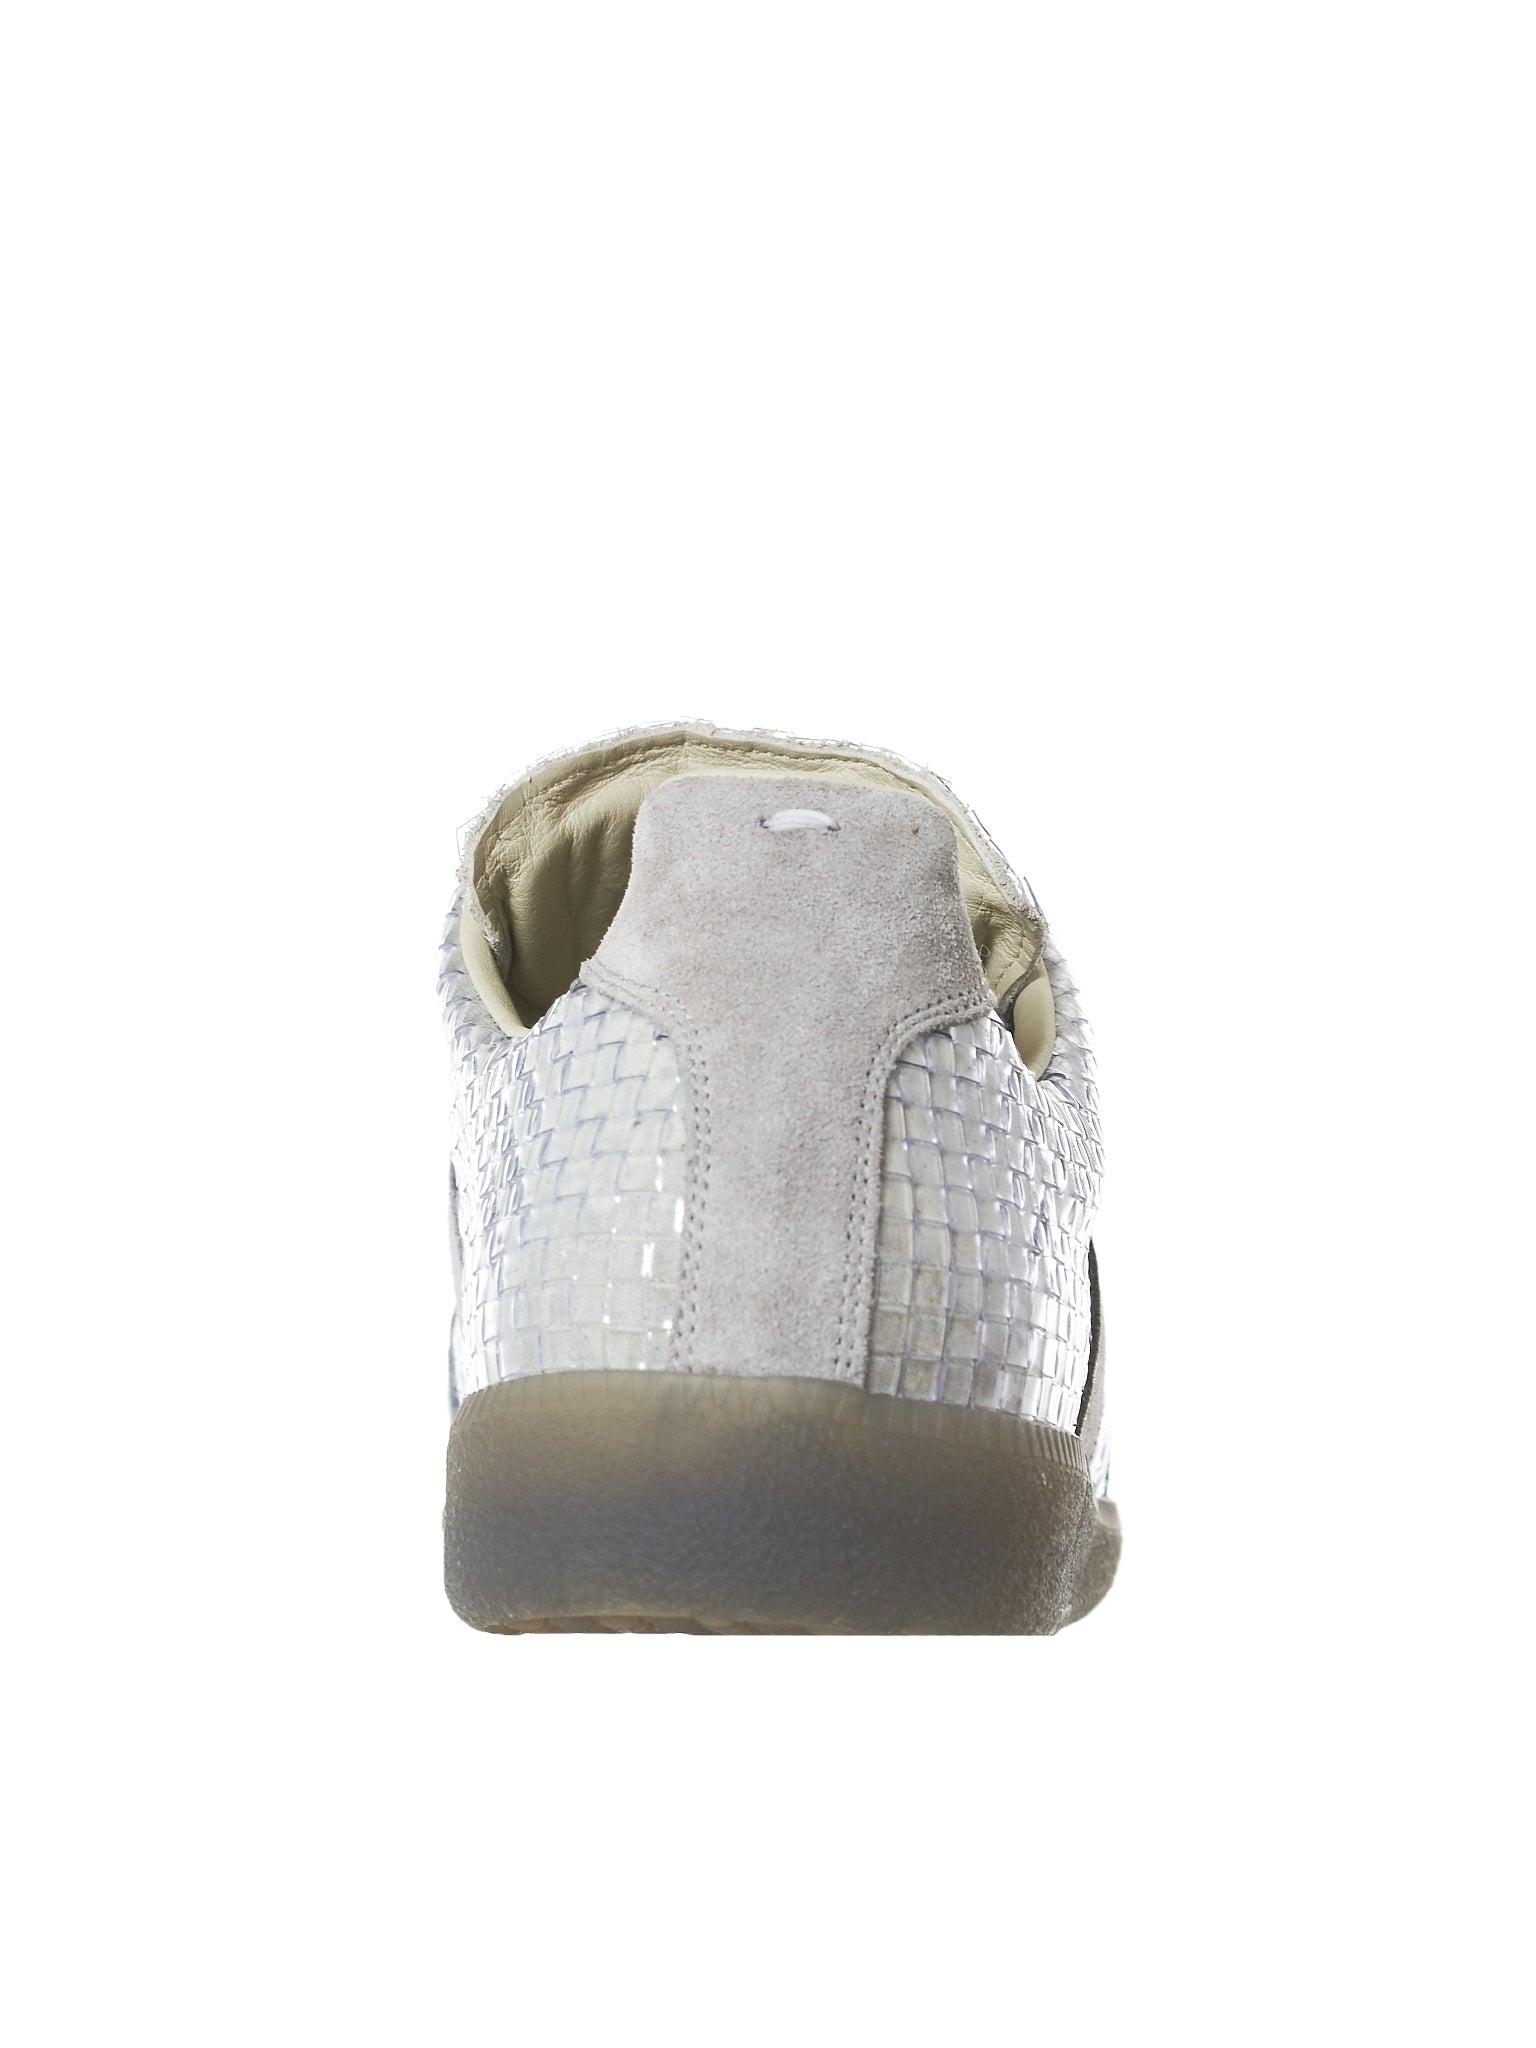 Maison Margiela Replica Sneakers - Hlorenzo Back 2